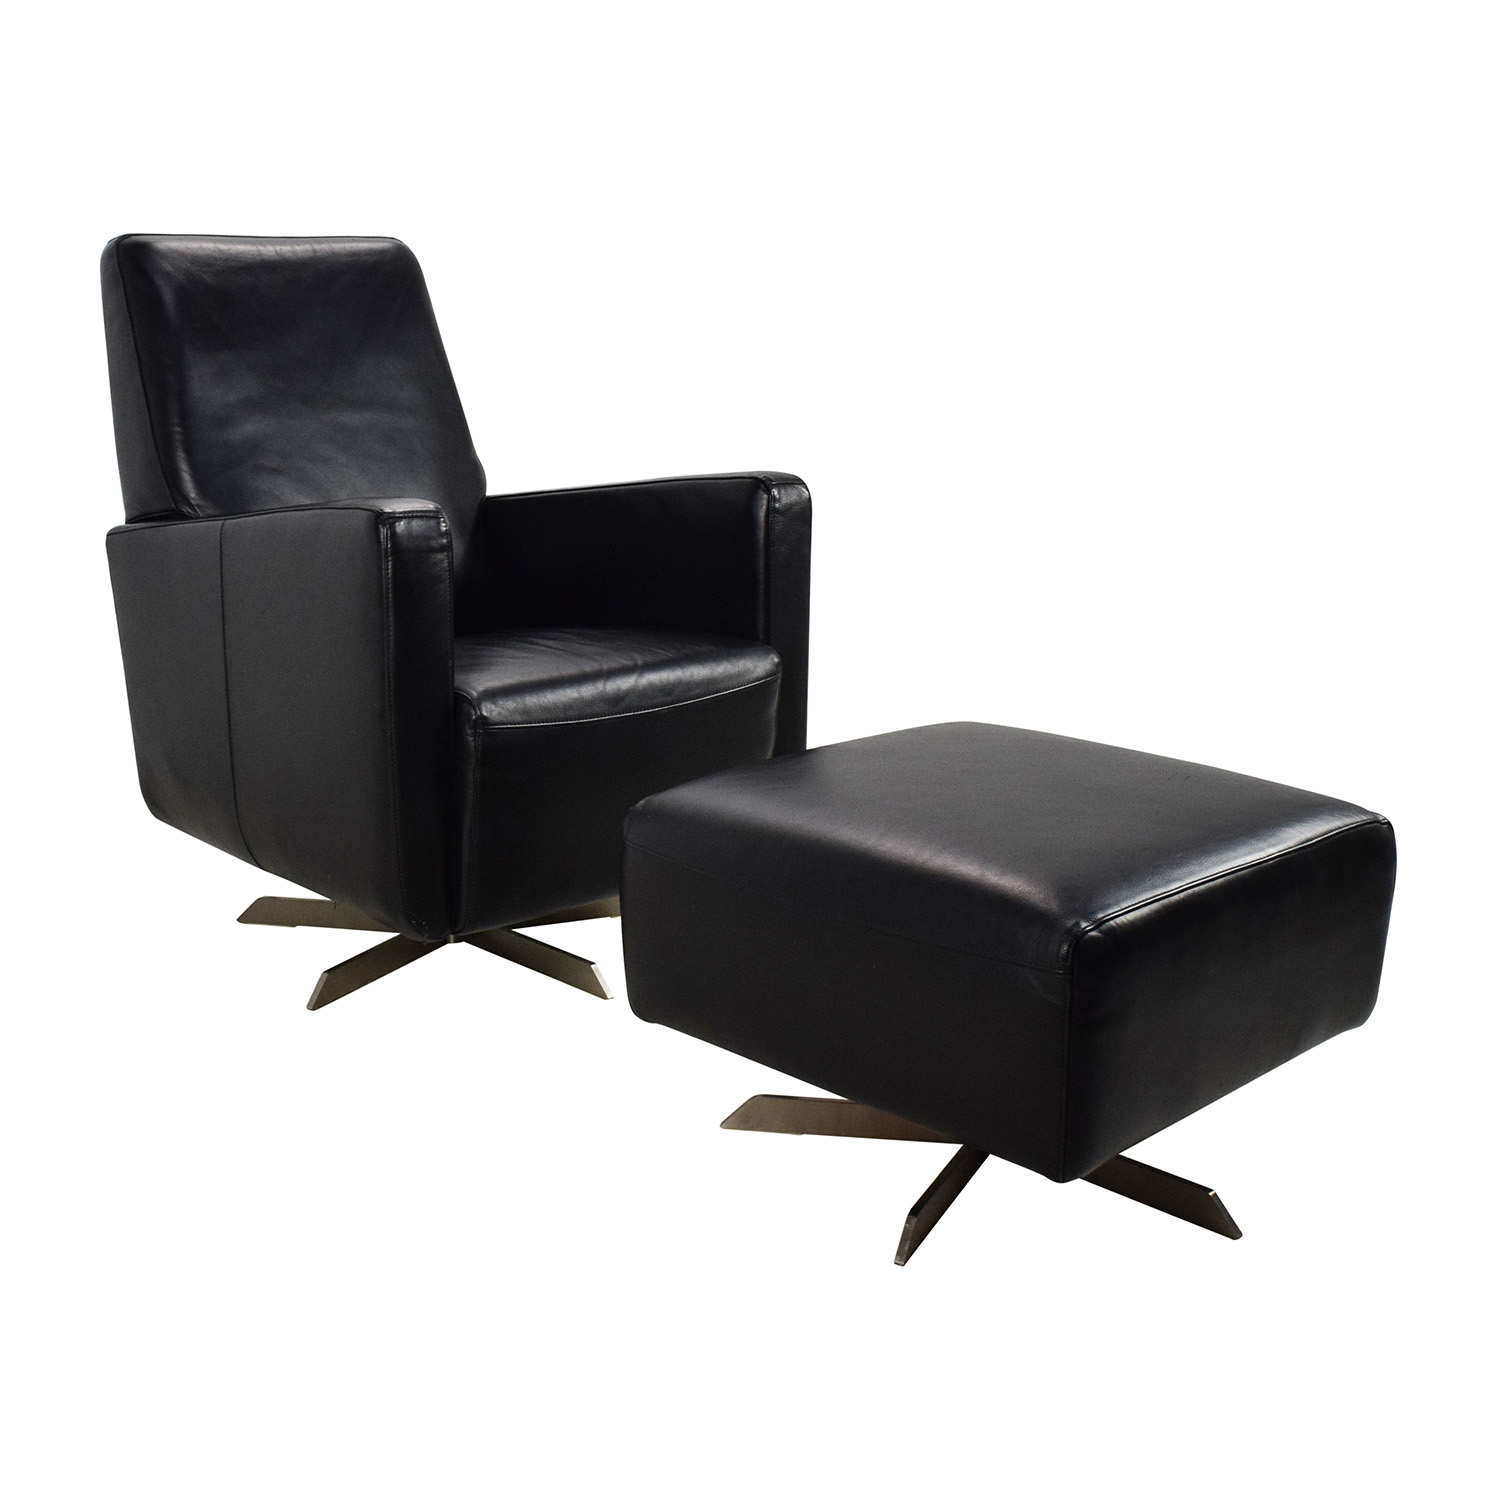 Black Leather Chair With Ottoman Contemporary Black Leather Recliner Chair And Ottoman With